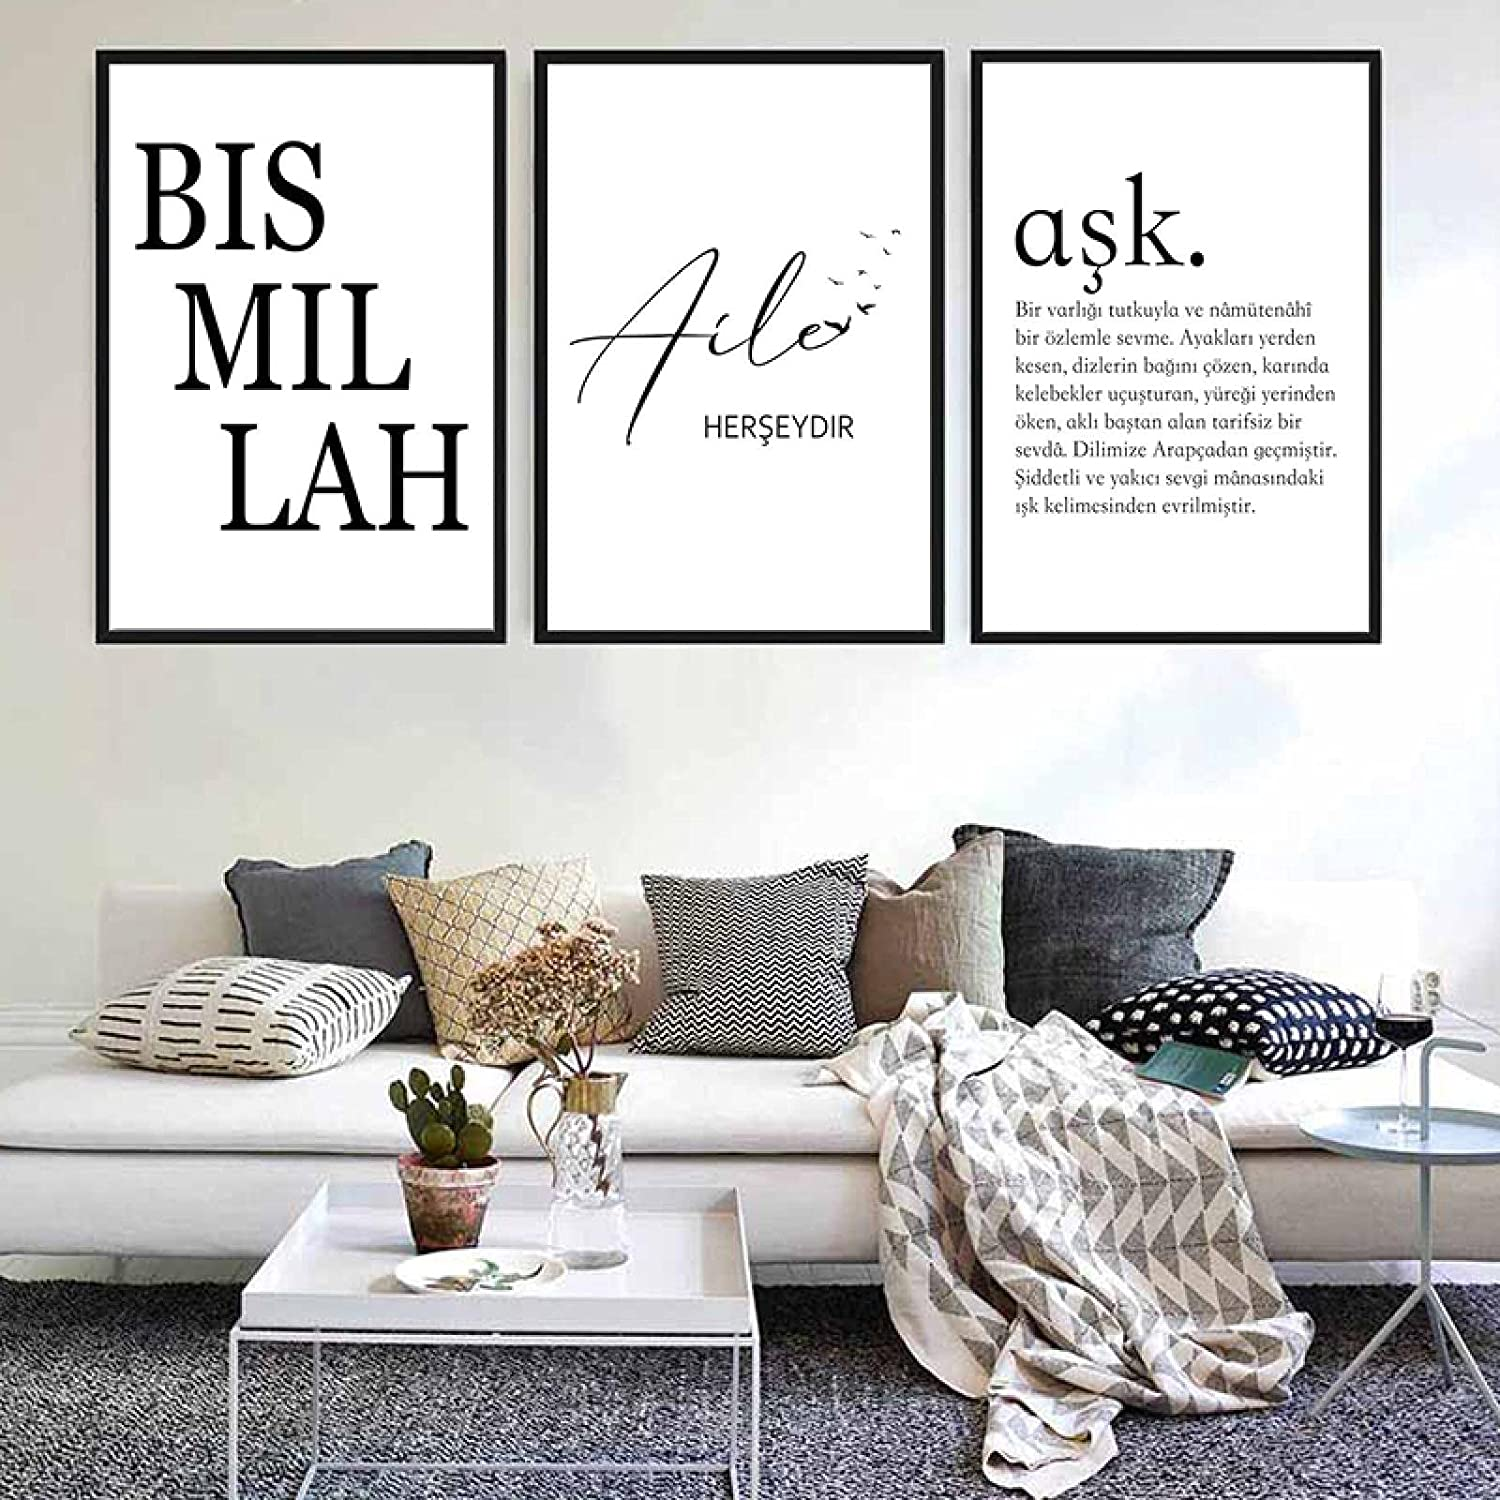 Sunsightly Print on Canvas Black Wall Indianapolis Mall Art Can Poster Choice White